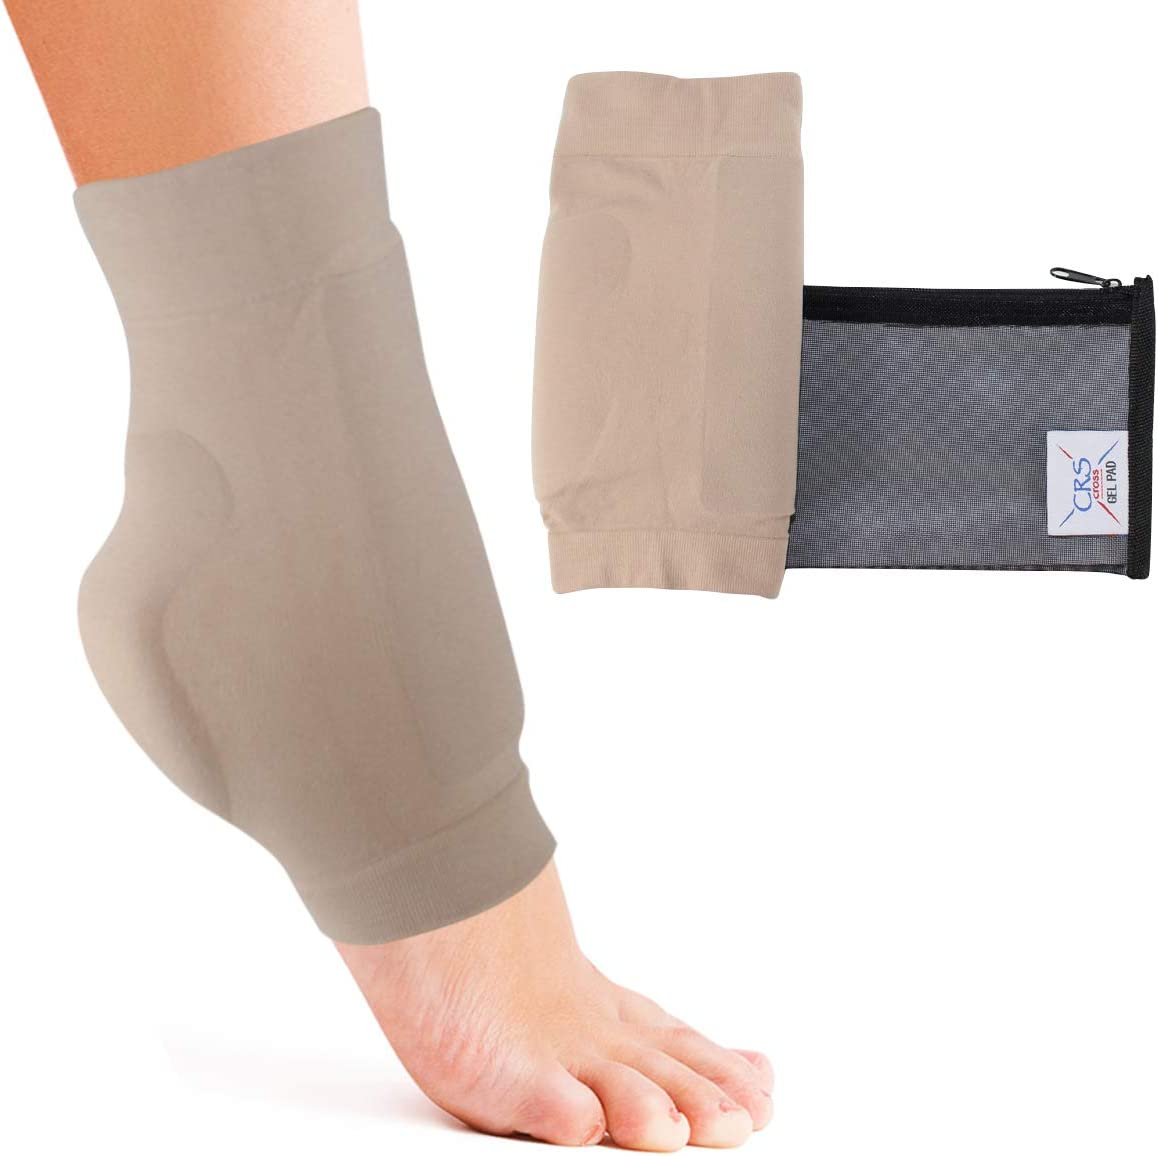 CRS Cross Boot Bumper Gel Pad Sleeve - Padded Skate Sock for Foot Protection of Achilles Tendon & Lace Bite Area Skating, Hockey, Roller, Ski, Hiking, Riding Boots (2 Sleeves & Bag)